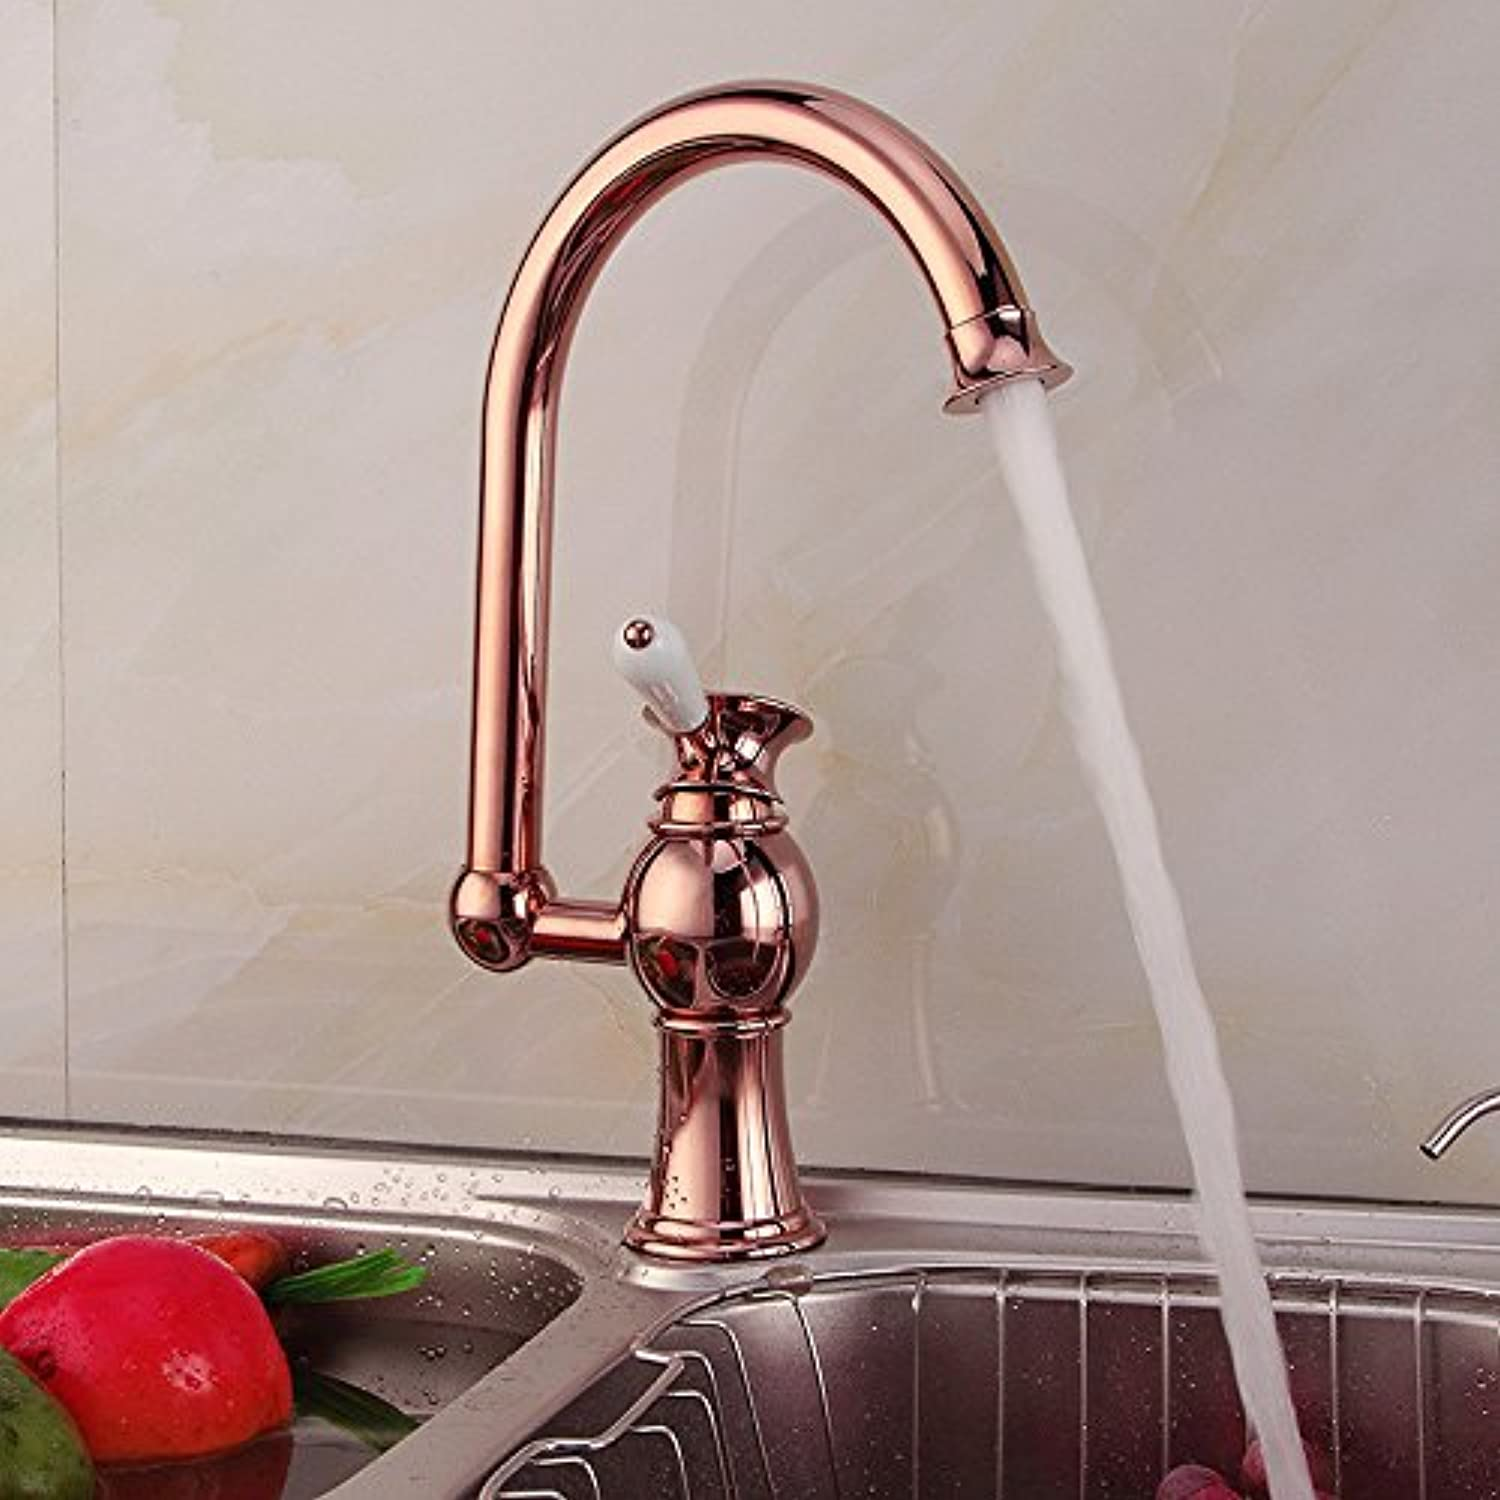 ZXYSink faucet European red bronze mixed water kitchen Home Furnishing redation vegetable washing basin sink faucet